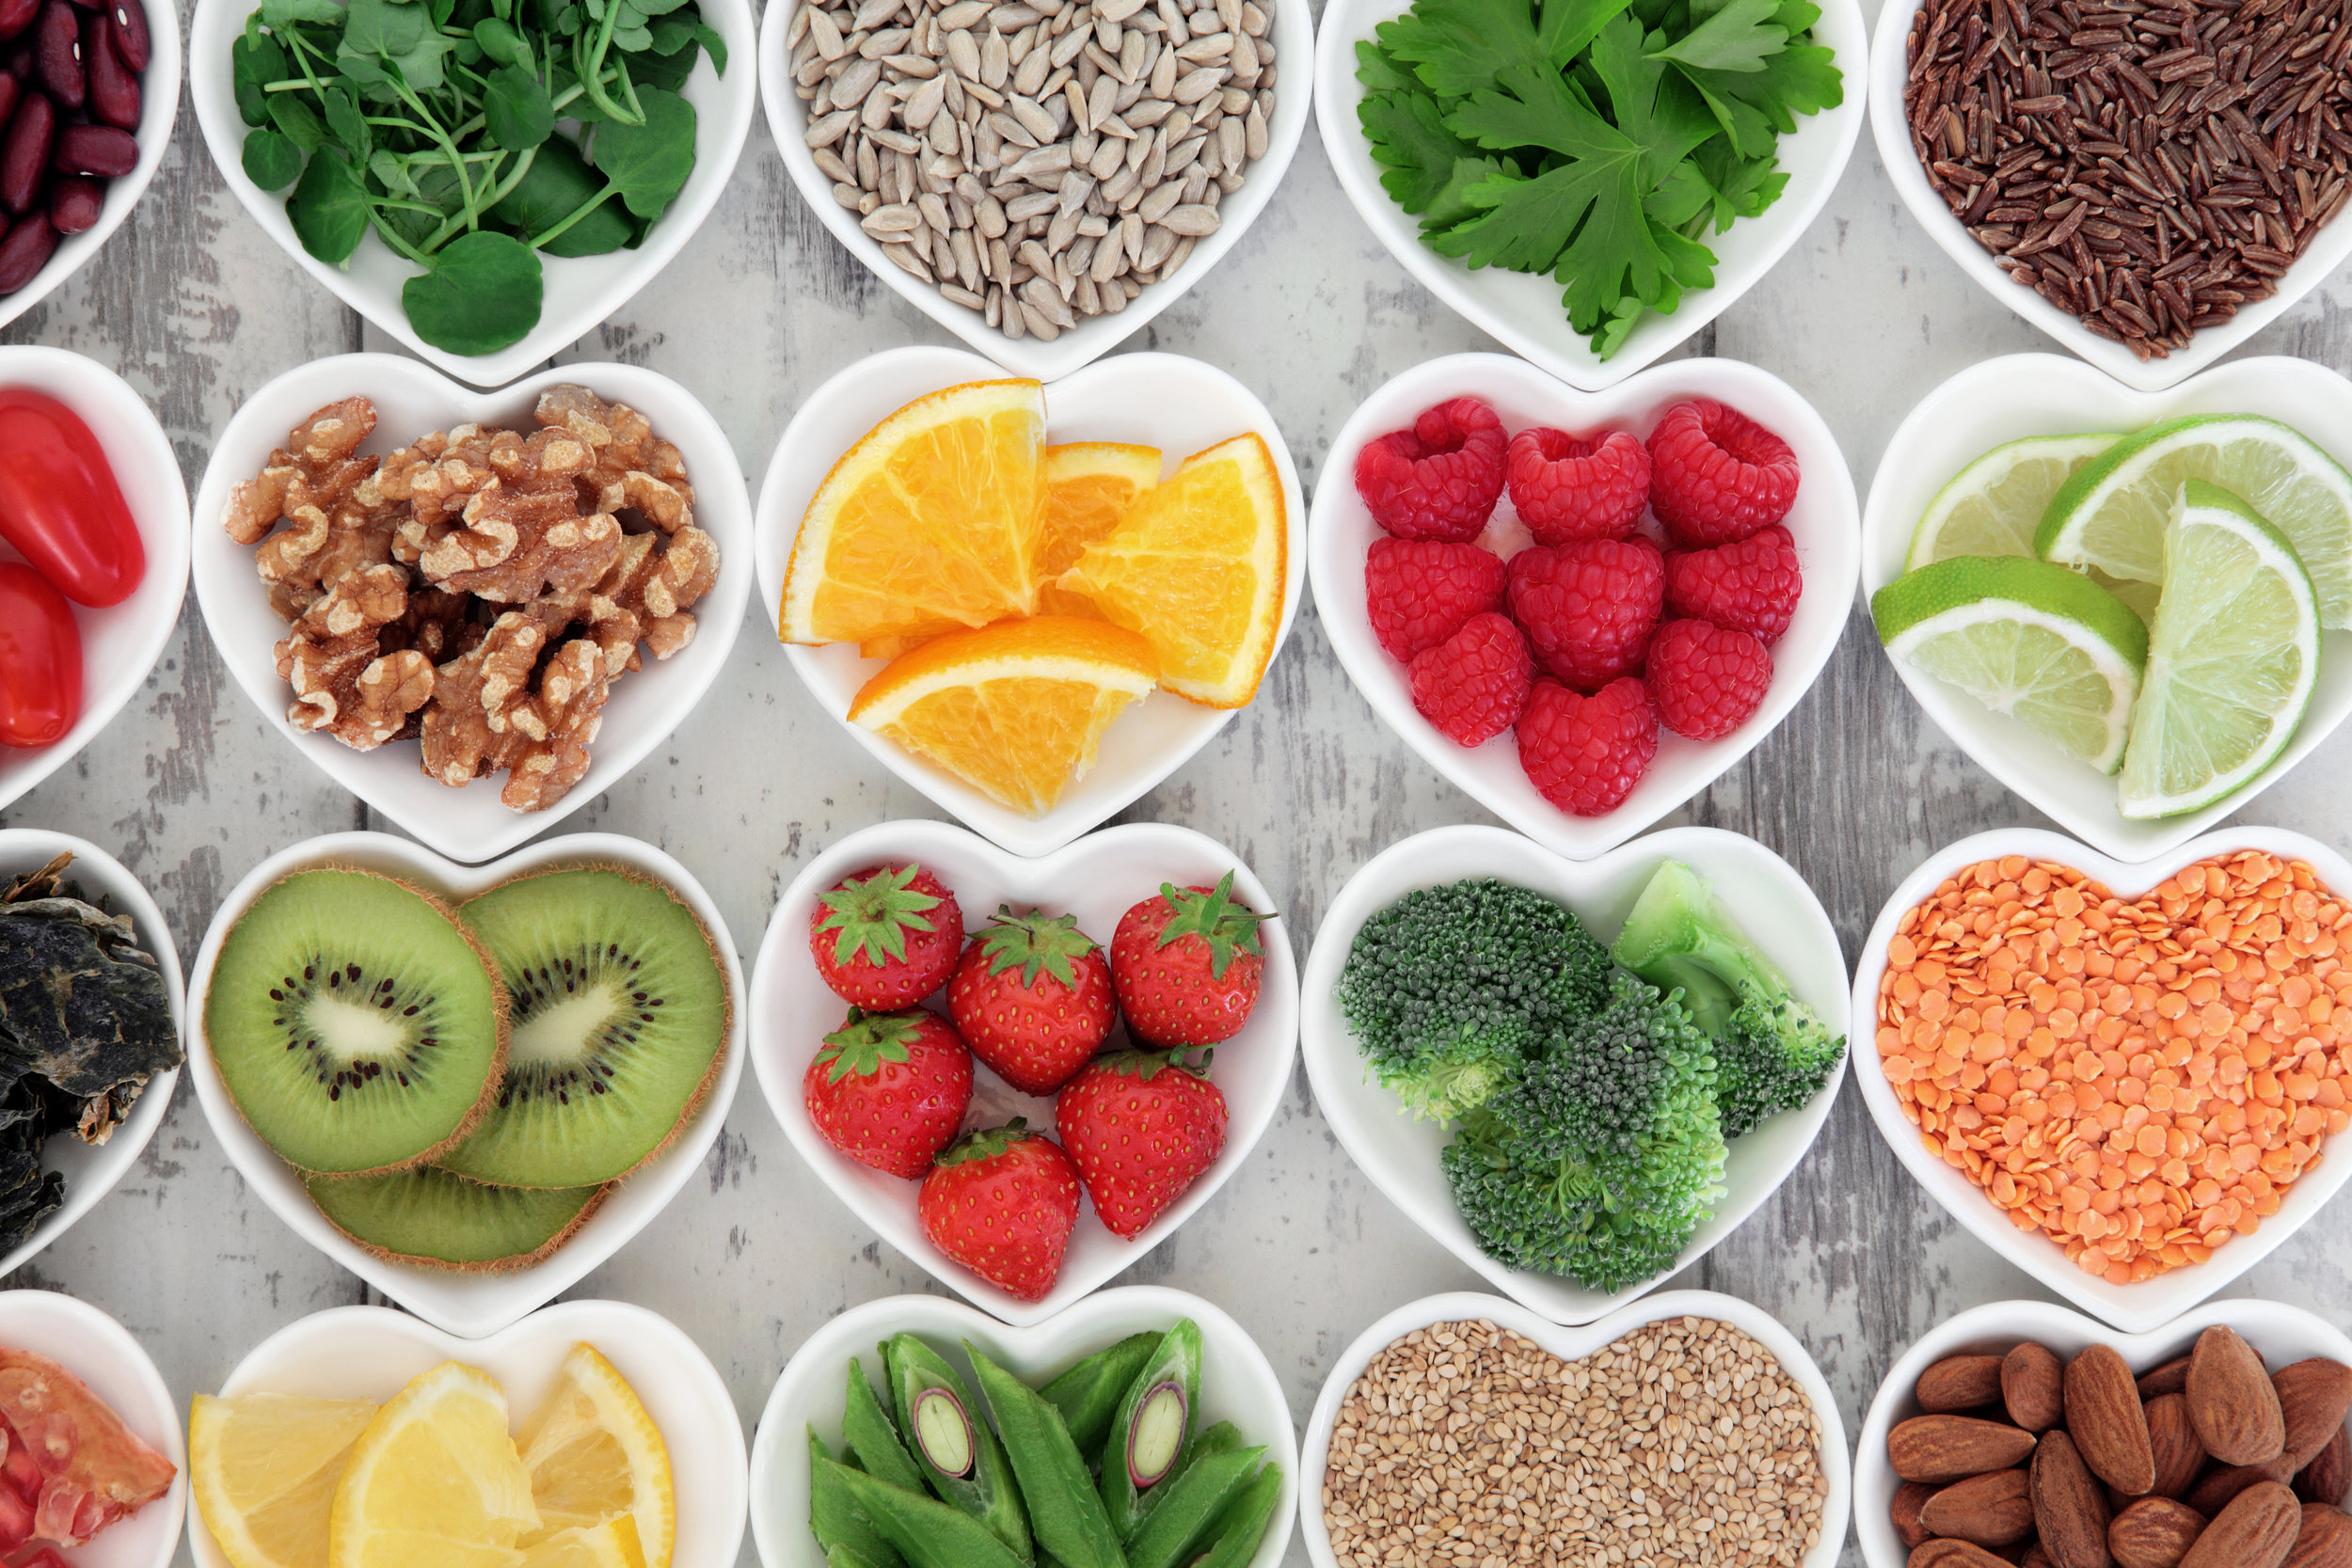 Superfoods come in many different colors, sizes, and shapes!